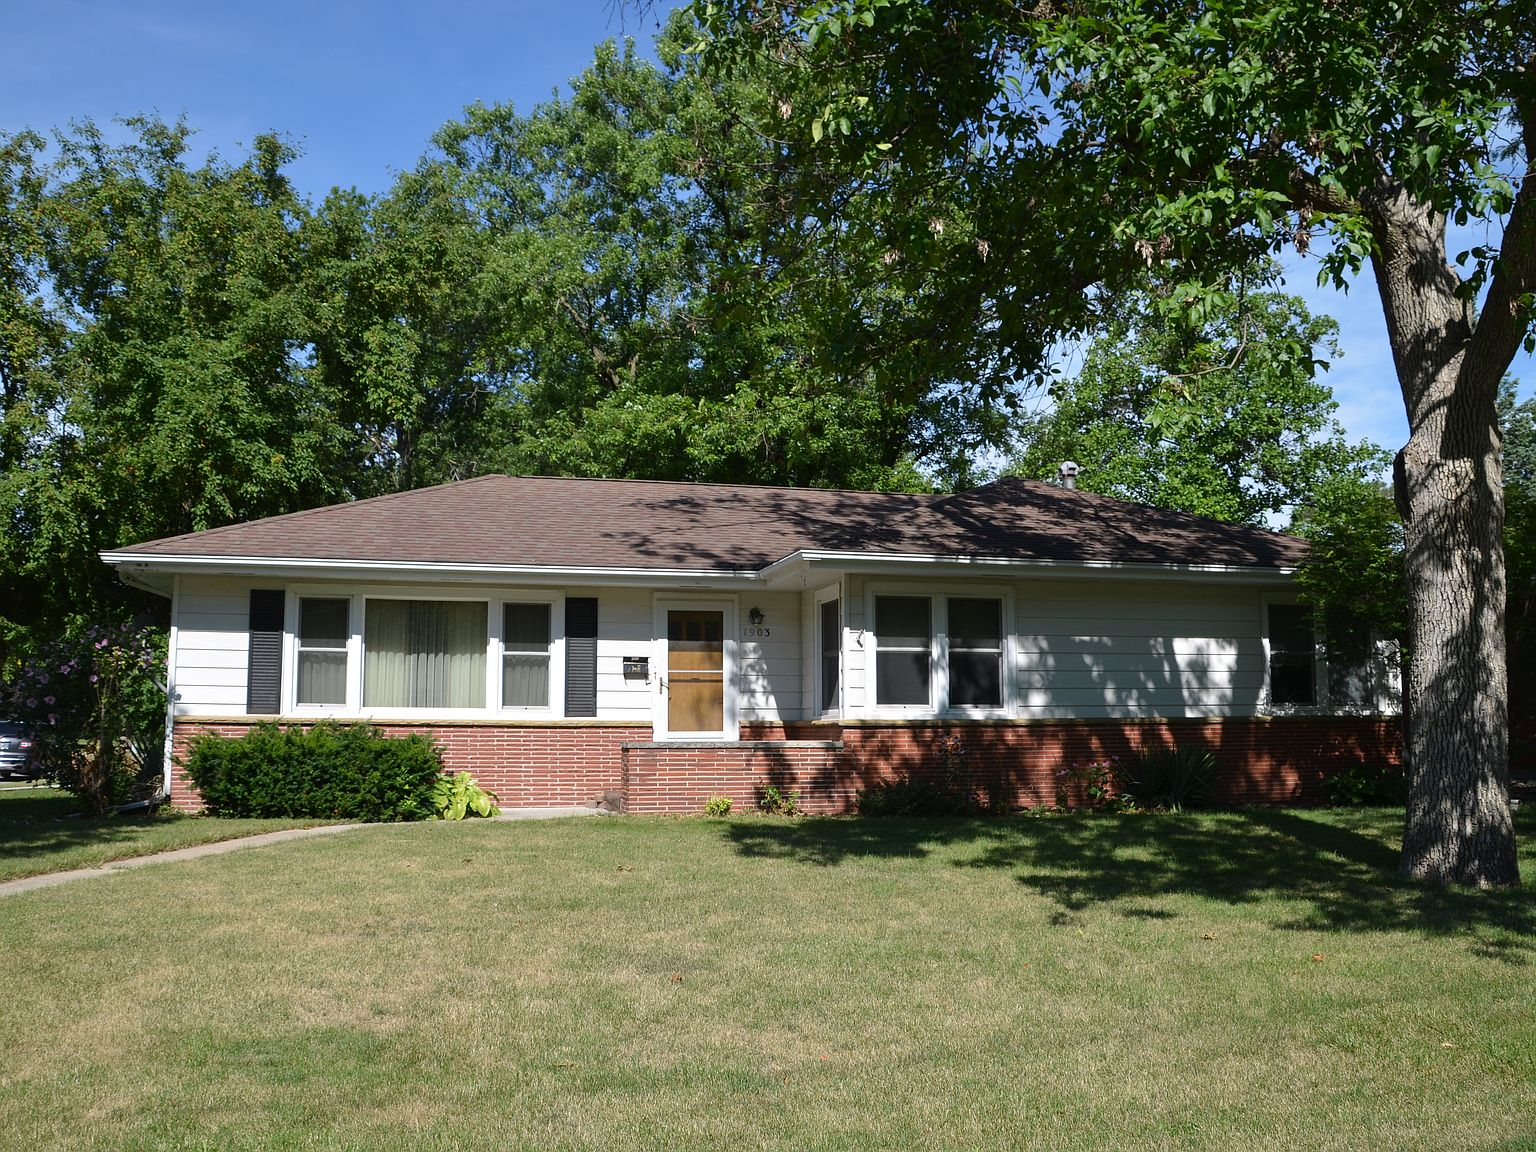 1903 Wilson Ave Ames Ia 50010 Zillow